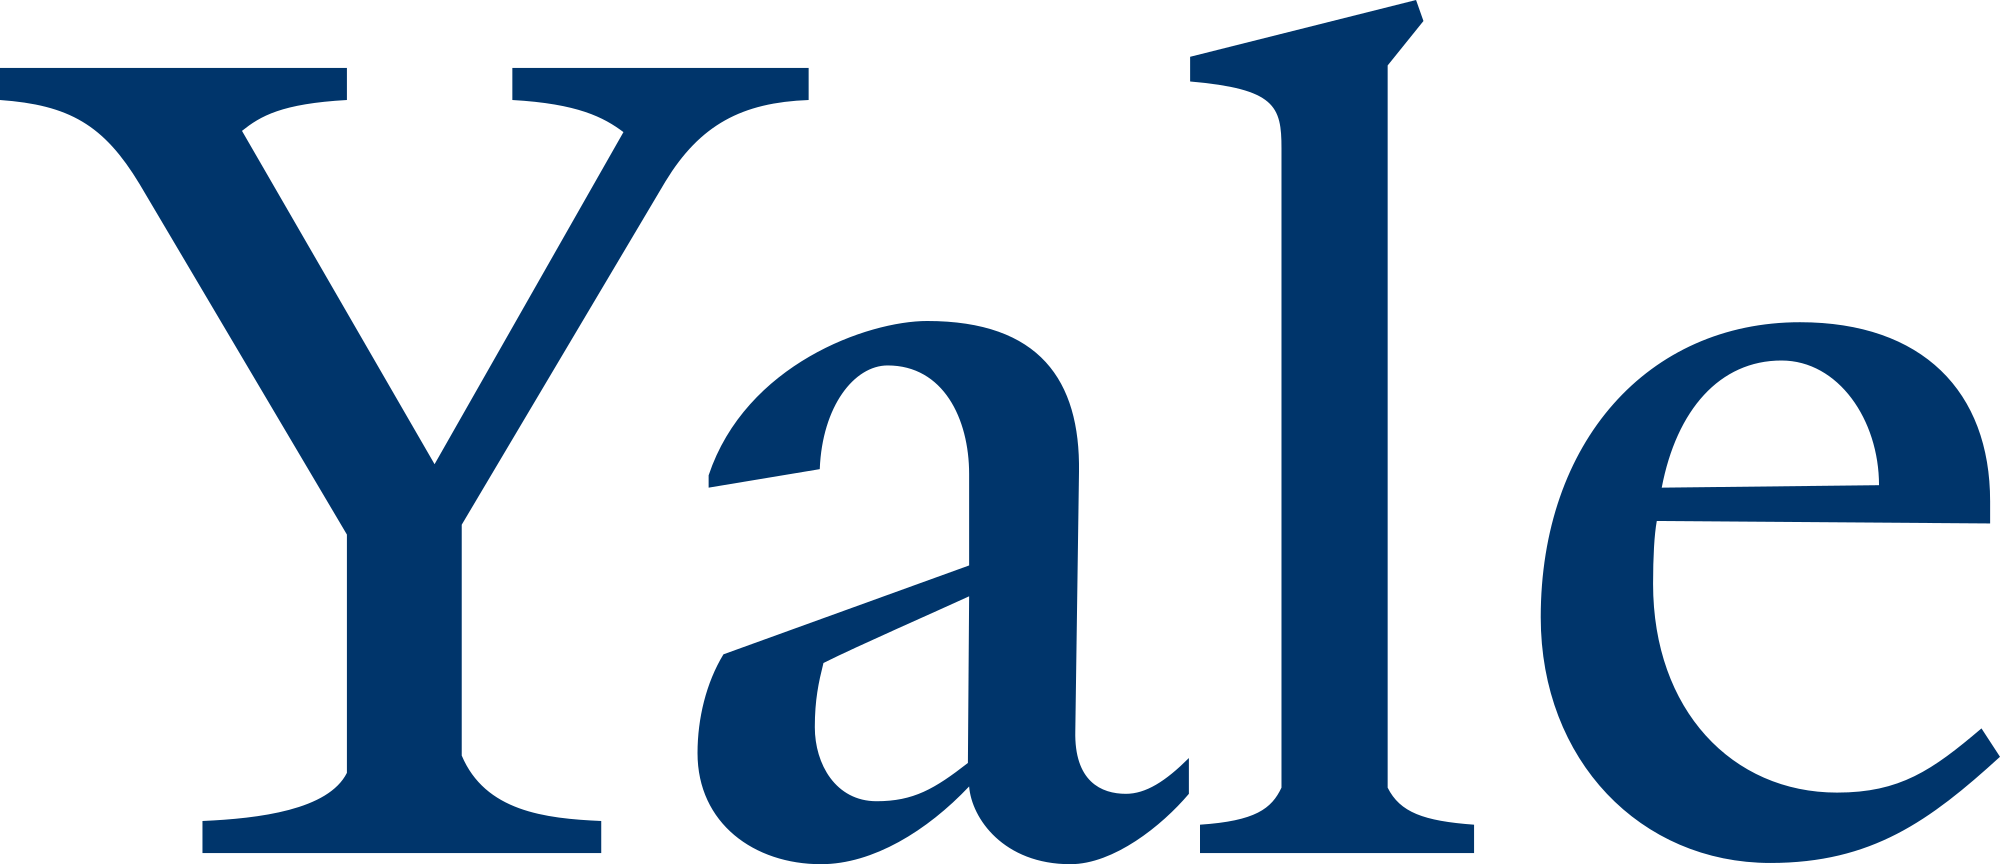 Yale Logo - File:Yale University logo.svg - Wikimedia Commons